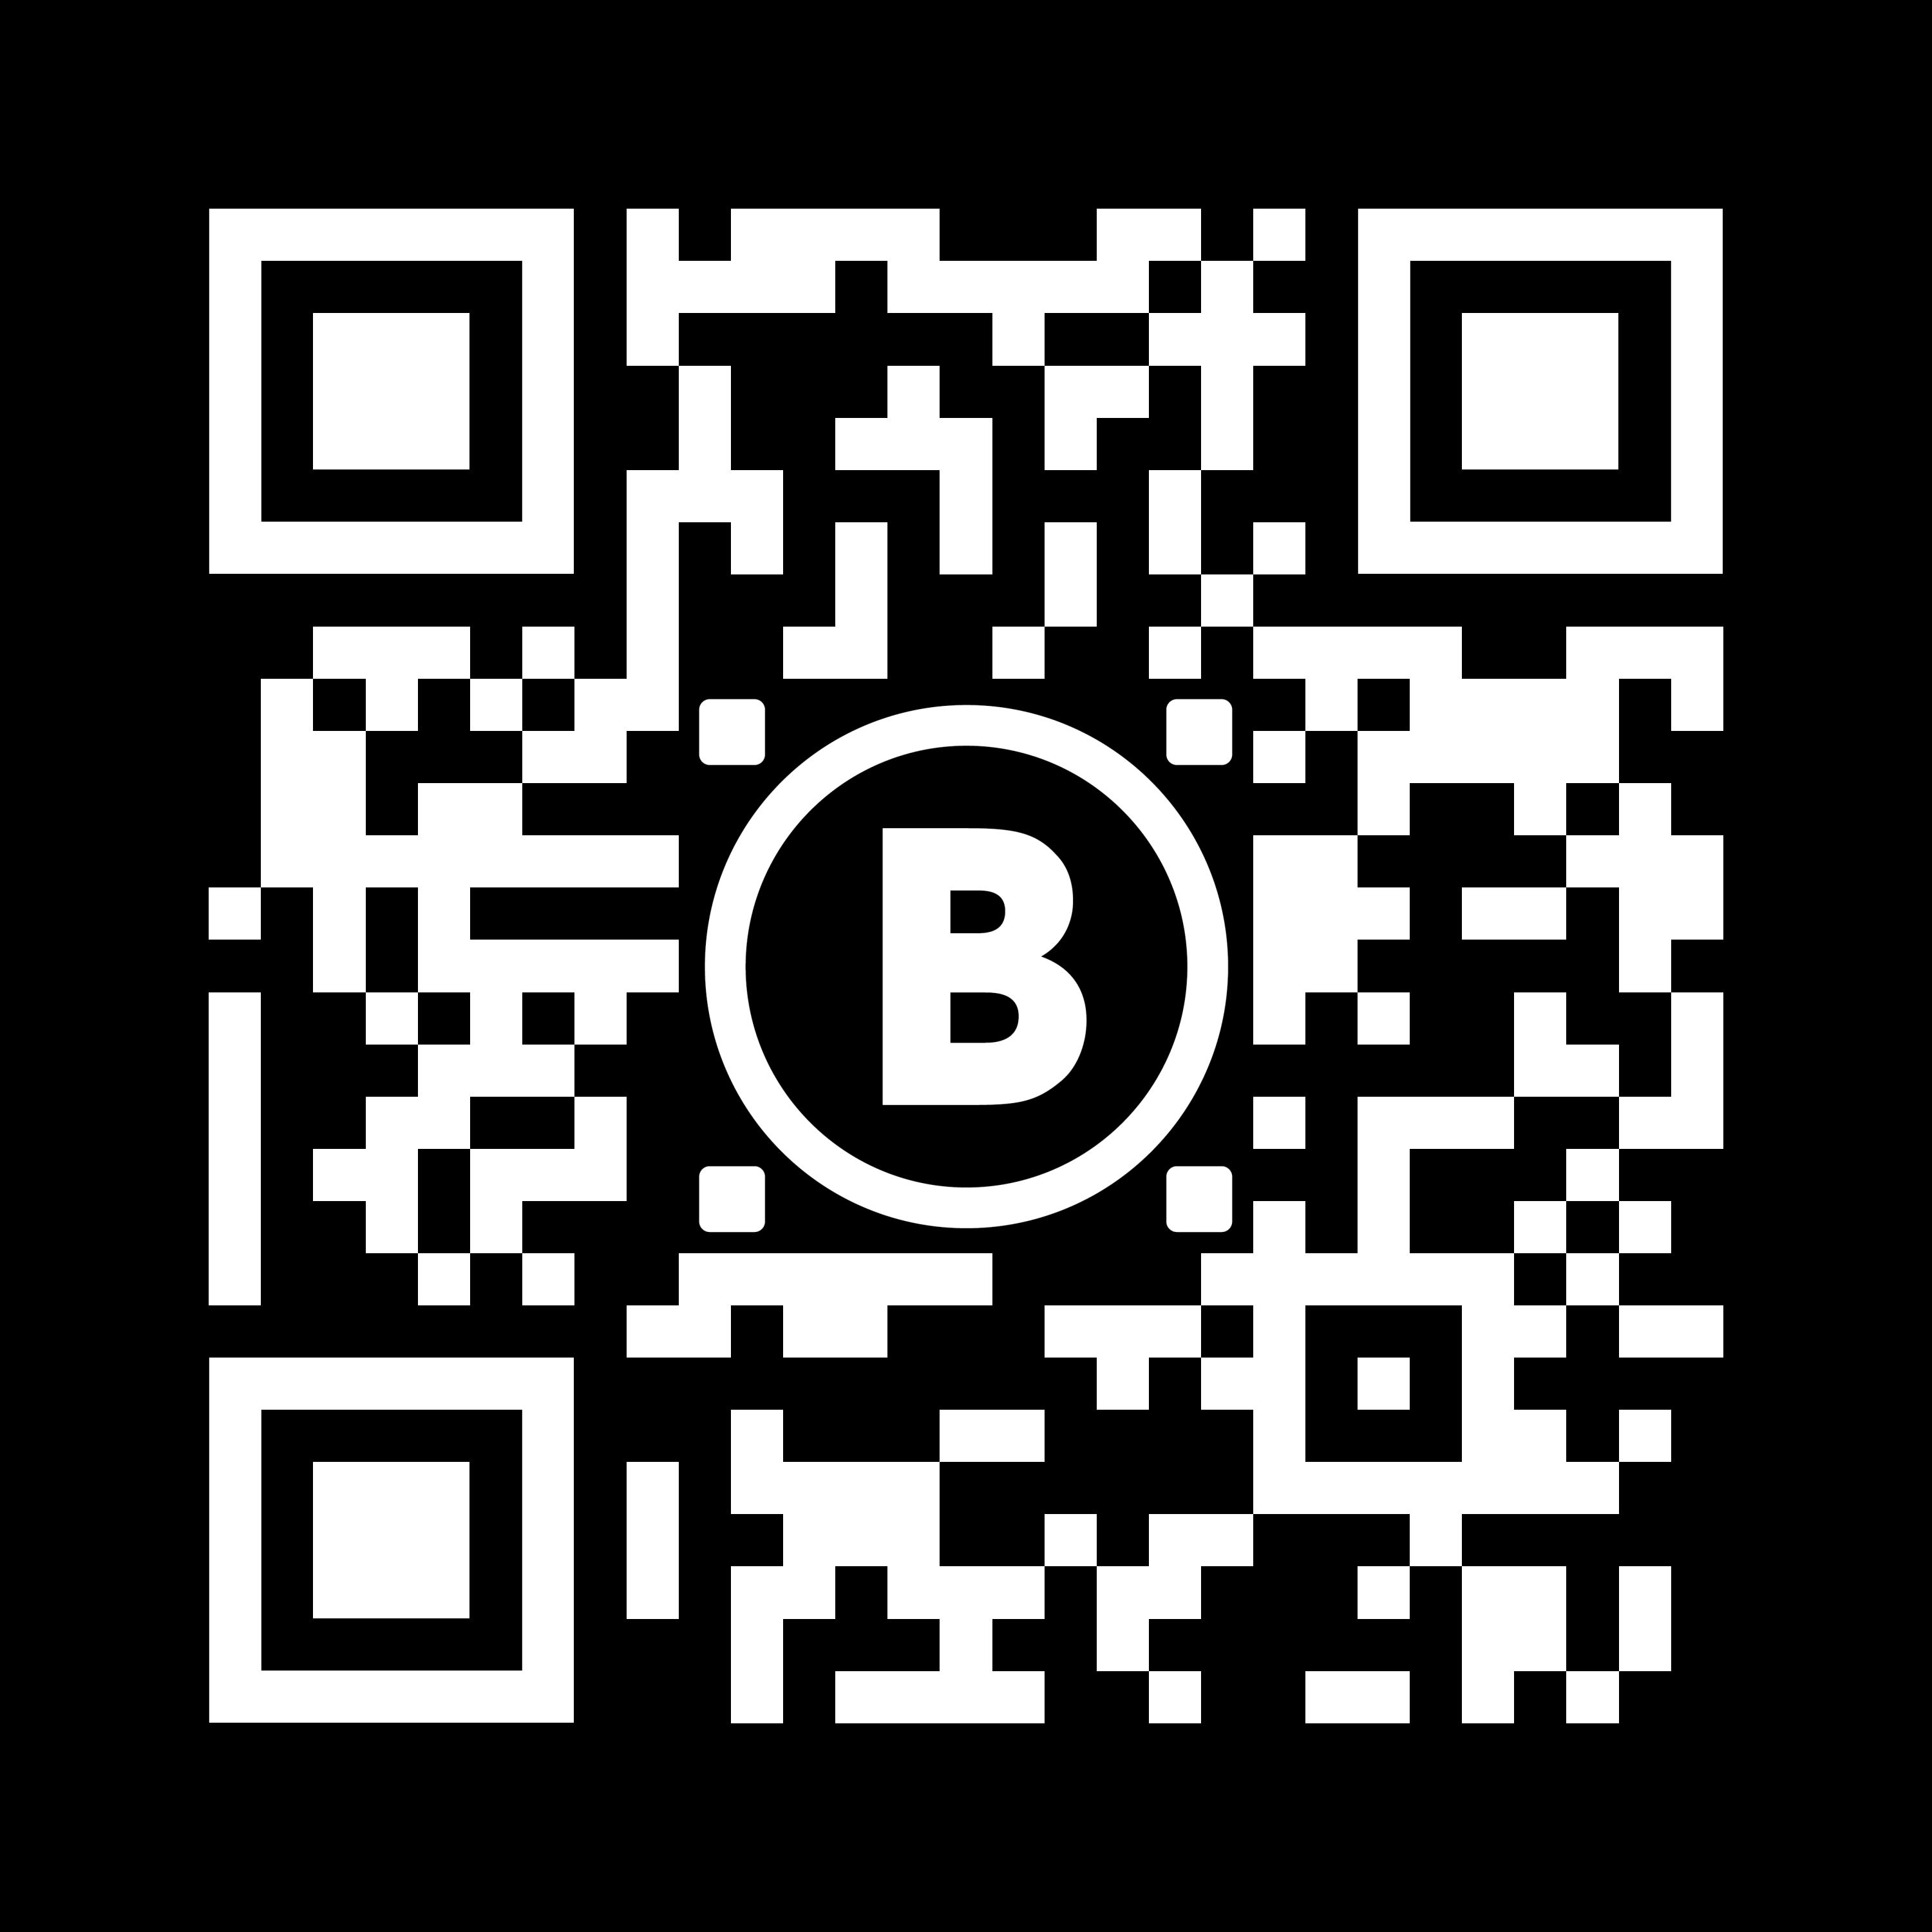 Scan the QR Code to go to the BCycle App Store